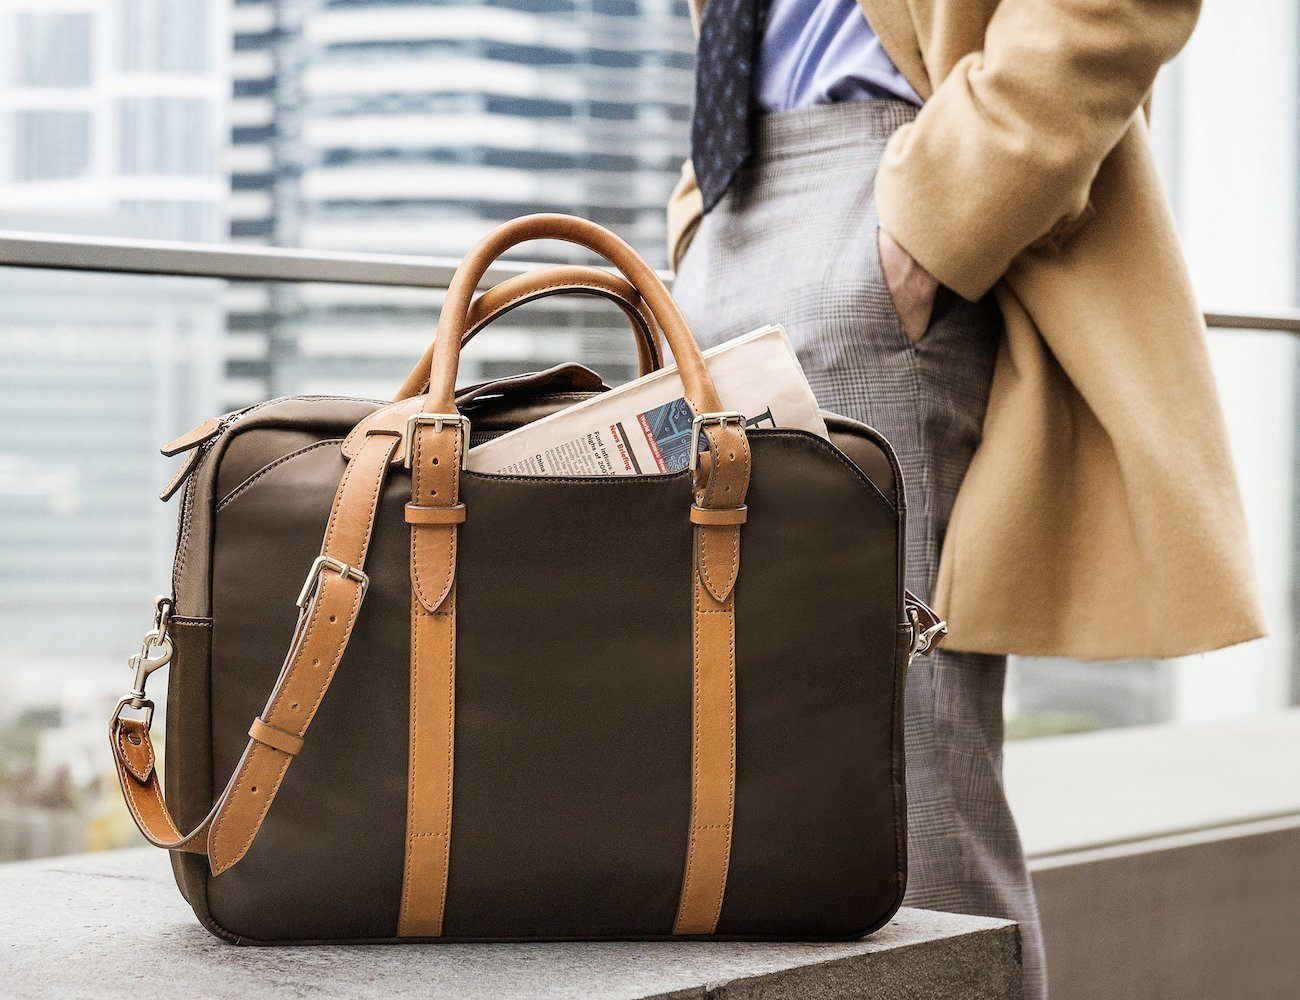 The Cary Premium Briefcase by Stuart & Lau